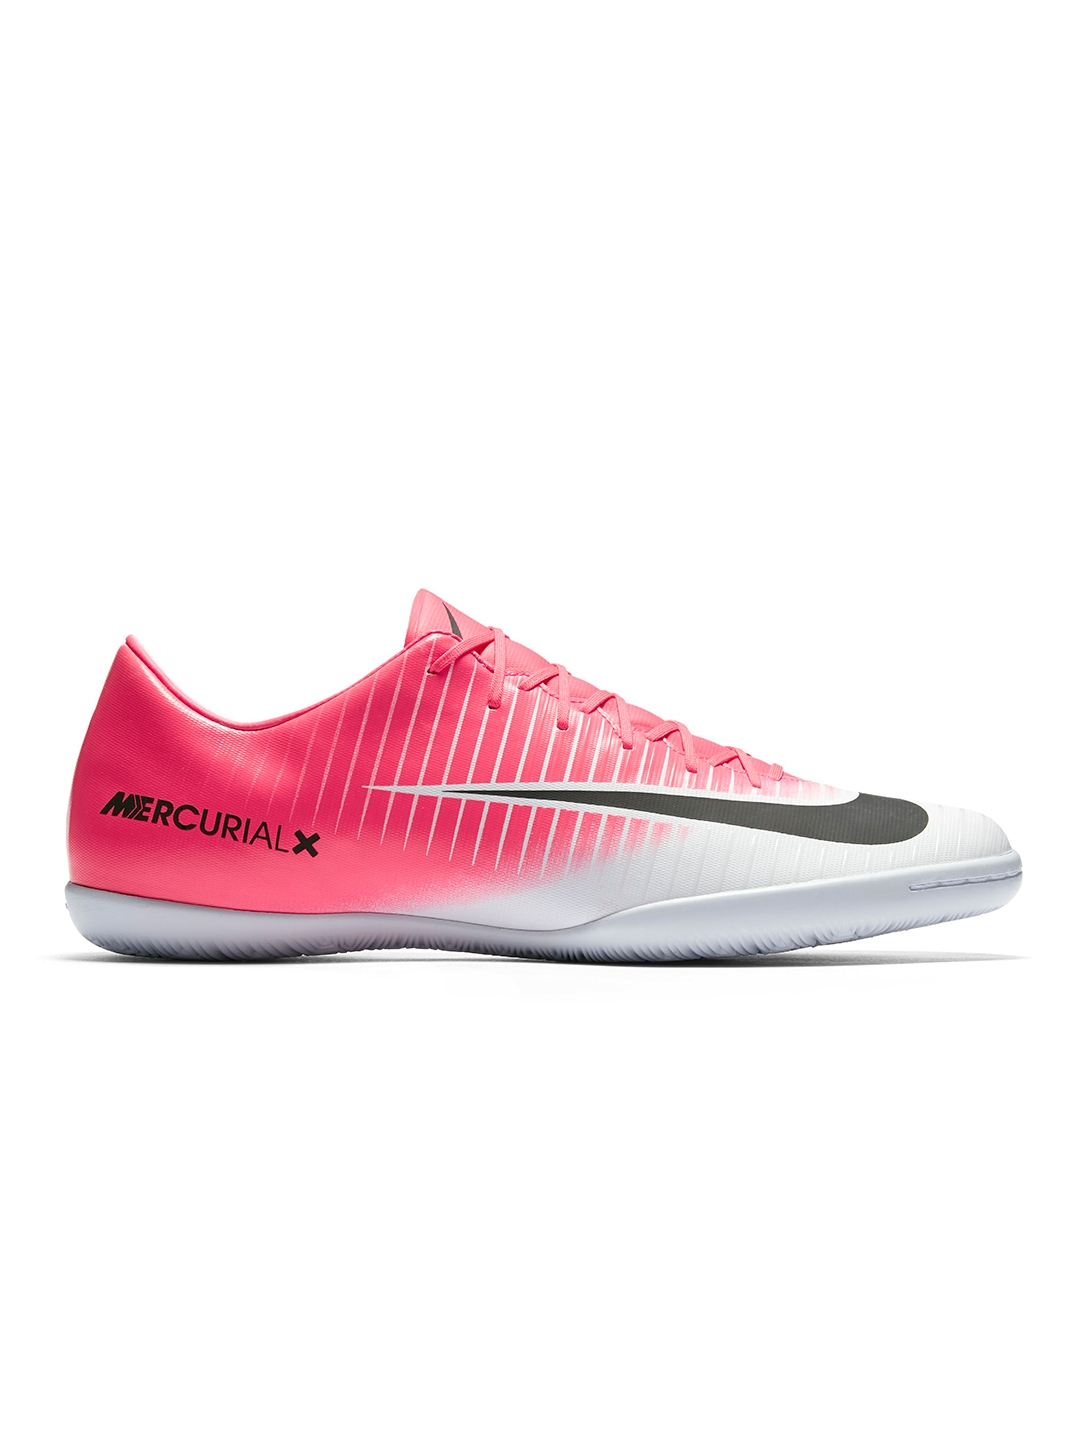 ... Nike Men Pink White Football MERCURIALX VICTORY Shoes coupon codes  98e51 d7a29  UNBOXING REVIEW Nike Mercurial Vortex ... b41ae5c00e759